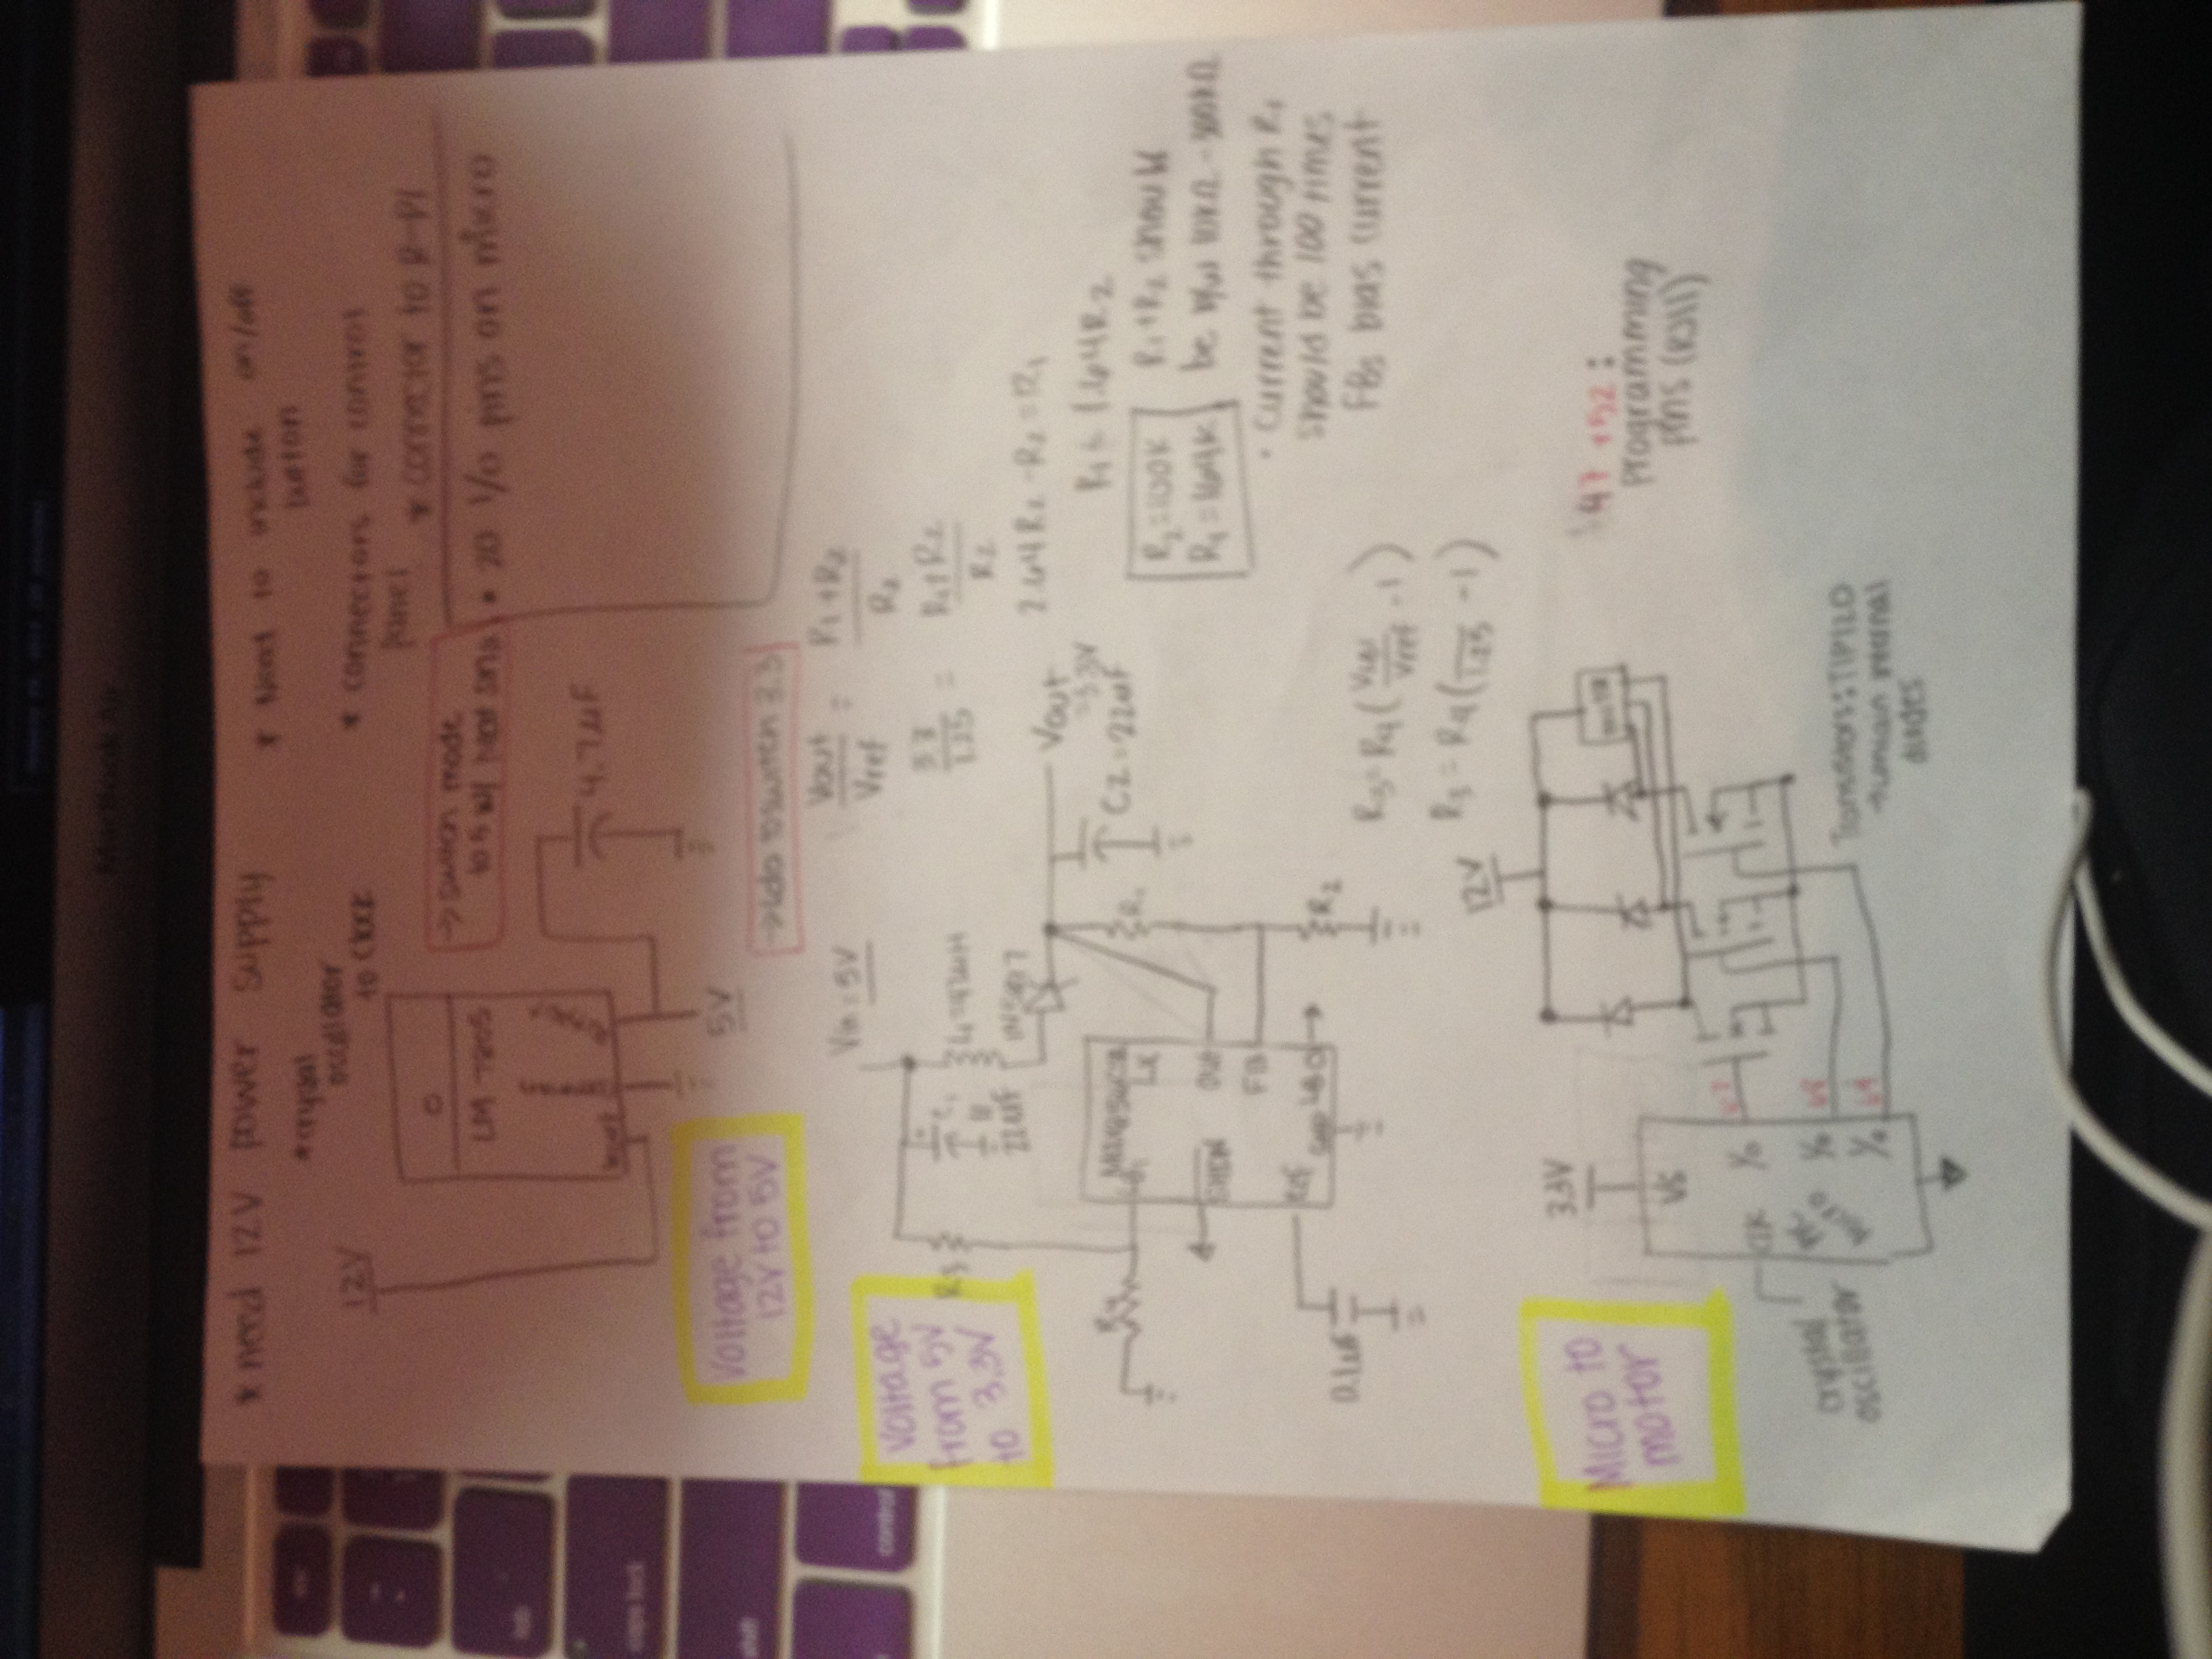 Courtney Laubachs Lab Notebook Envelope Detector One Circuit A Week Of The Biggest Problems Was Faced How To Get That All Supplied Parts Correcty Including Using 12v Power Supply Schematic Is Drawn